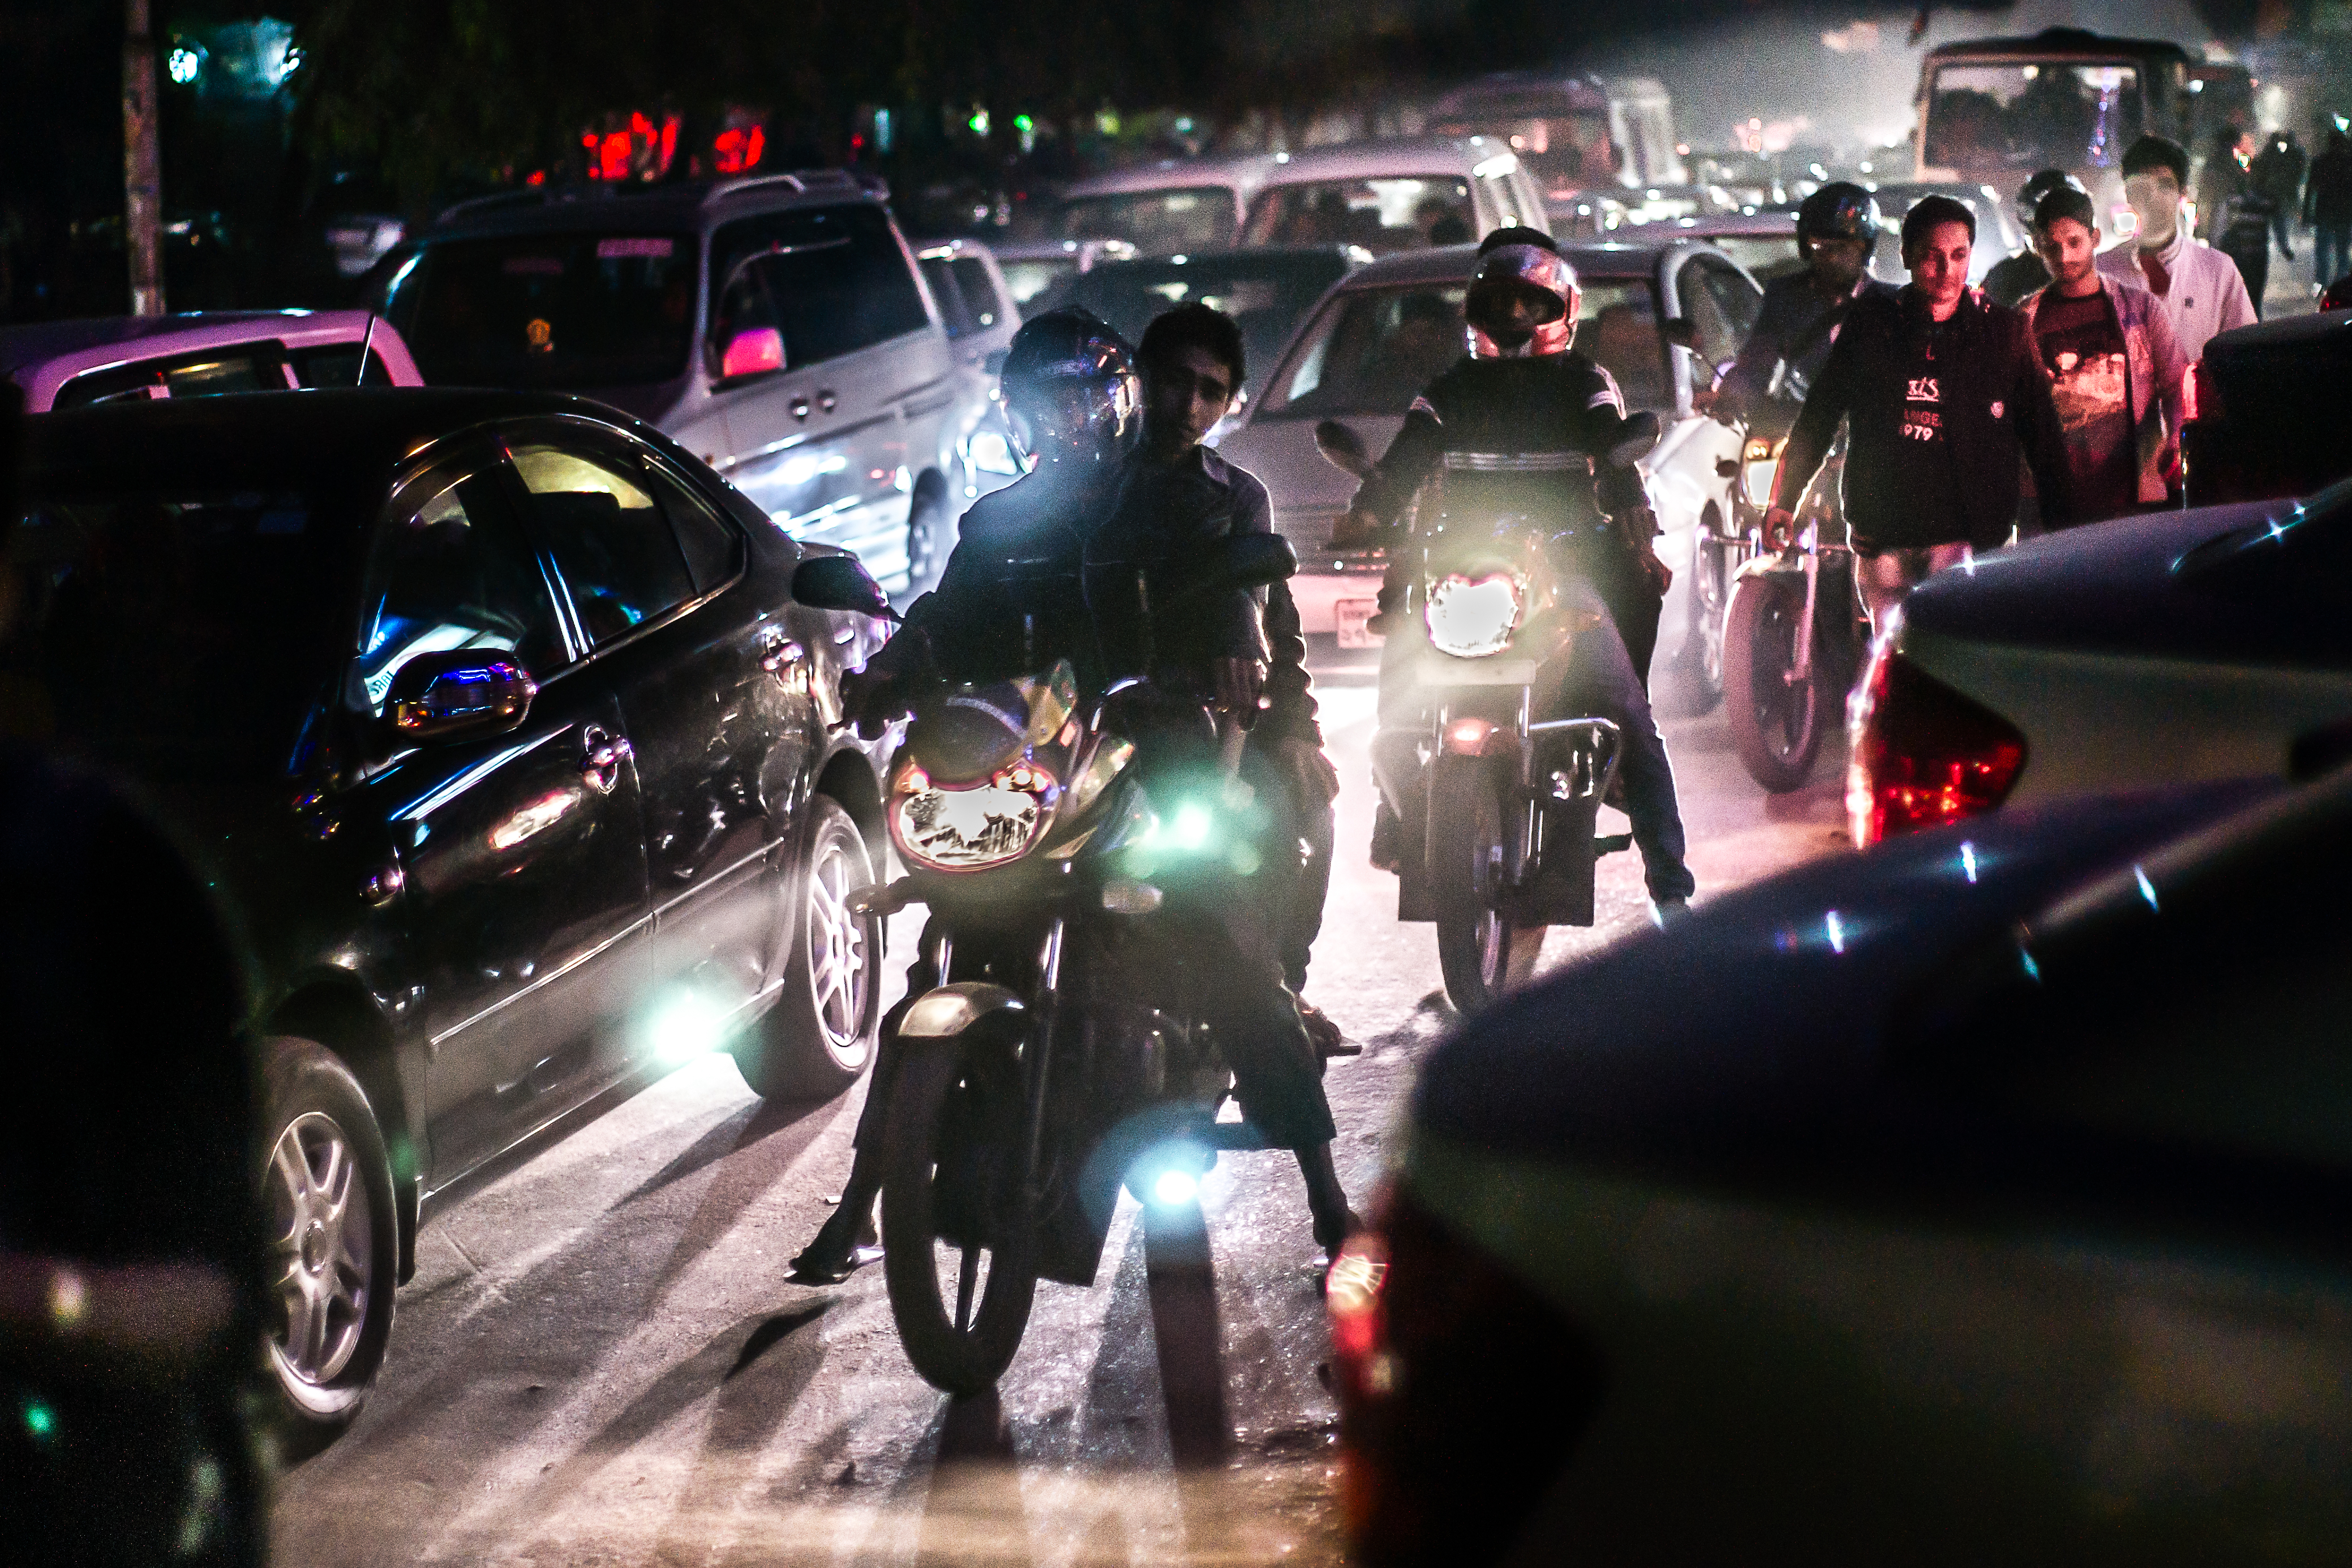 CARS MOTORBIKES AND PEDESTRIANS by Andy Smith.jpg